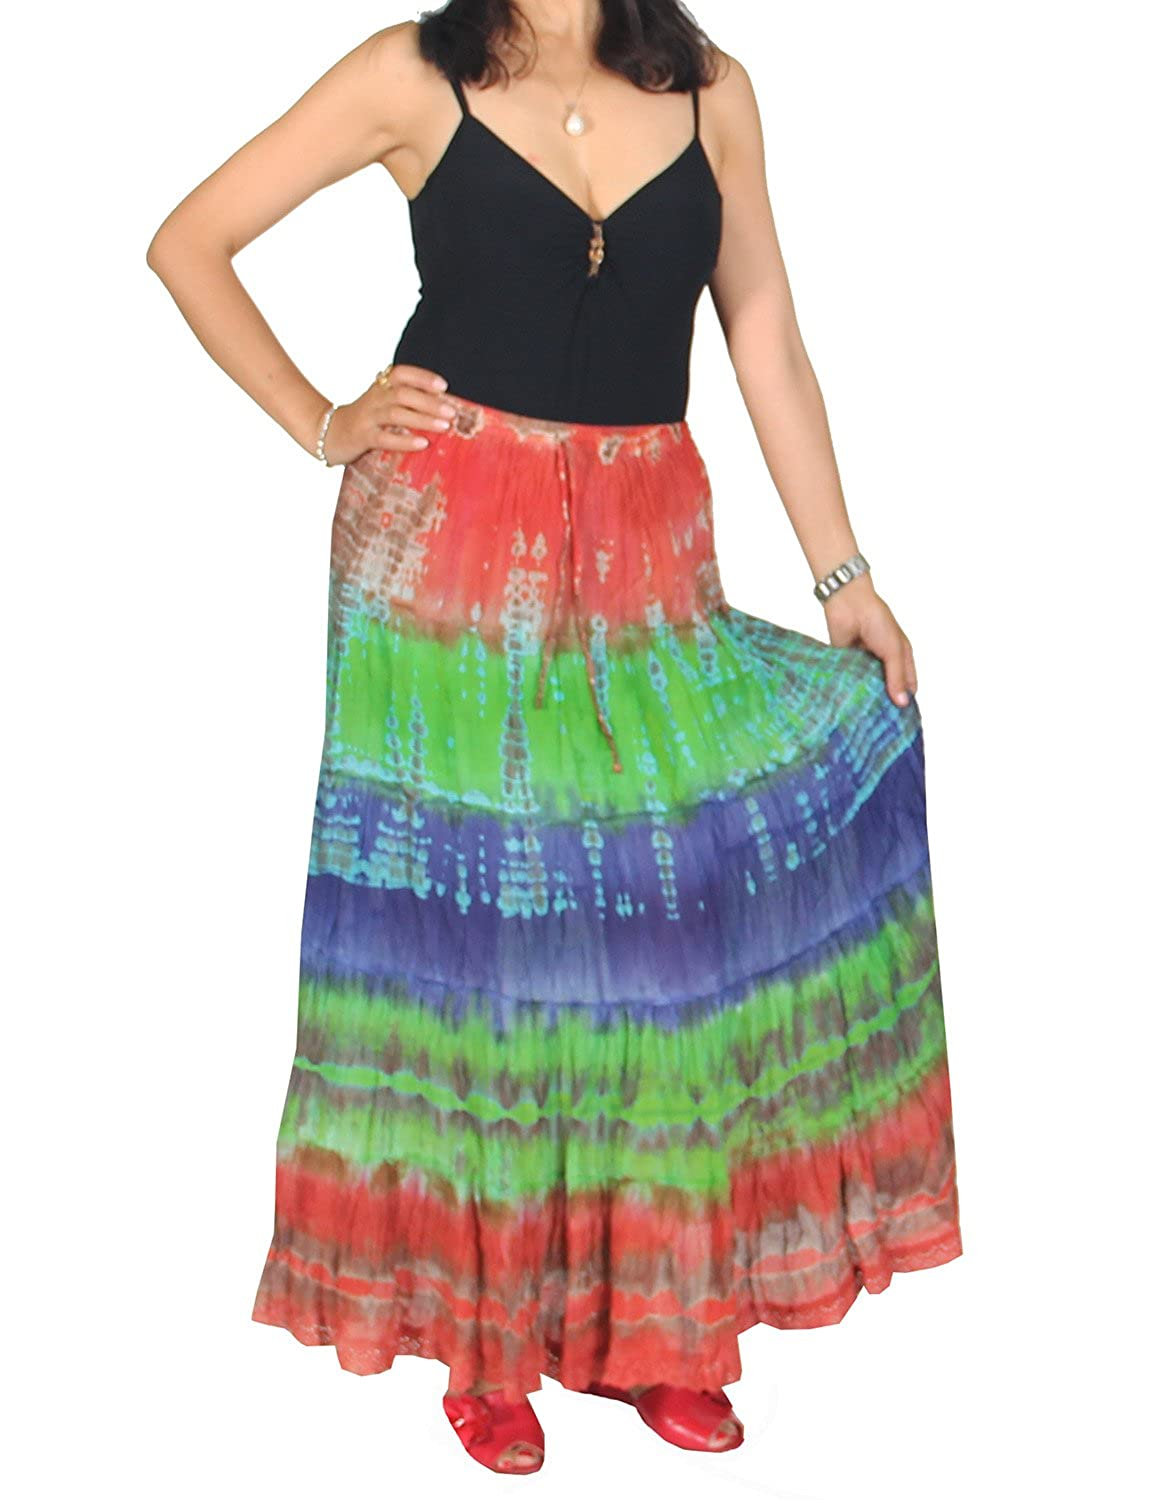 Hippie Dress | Long, Boho, Vintage, 70s KayJayStyles Womens Hippie Boho Gypsy Tie-dye Long Skirt $18.98 AT vintagedancer.com